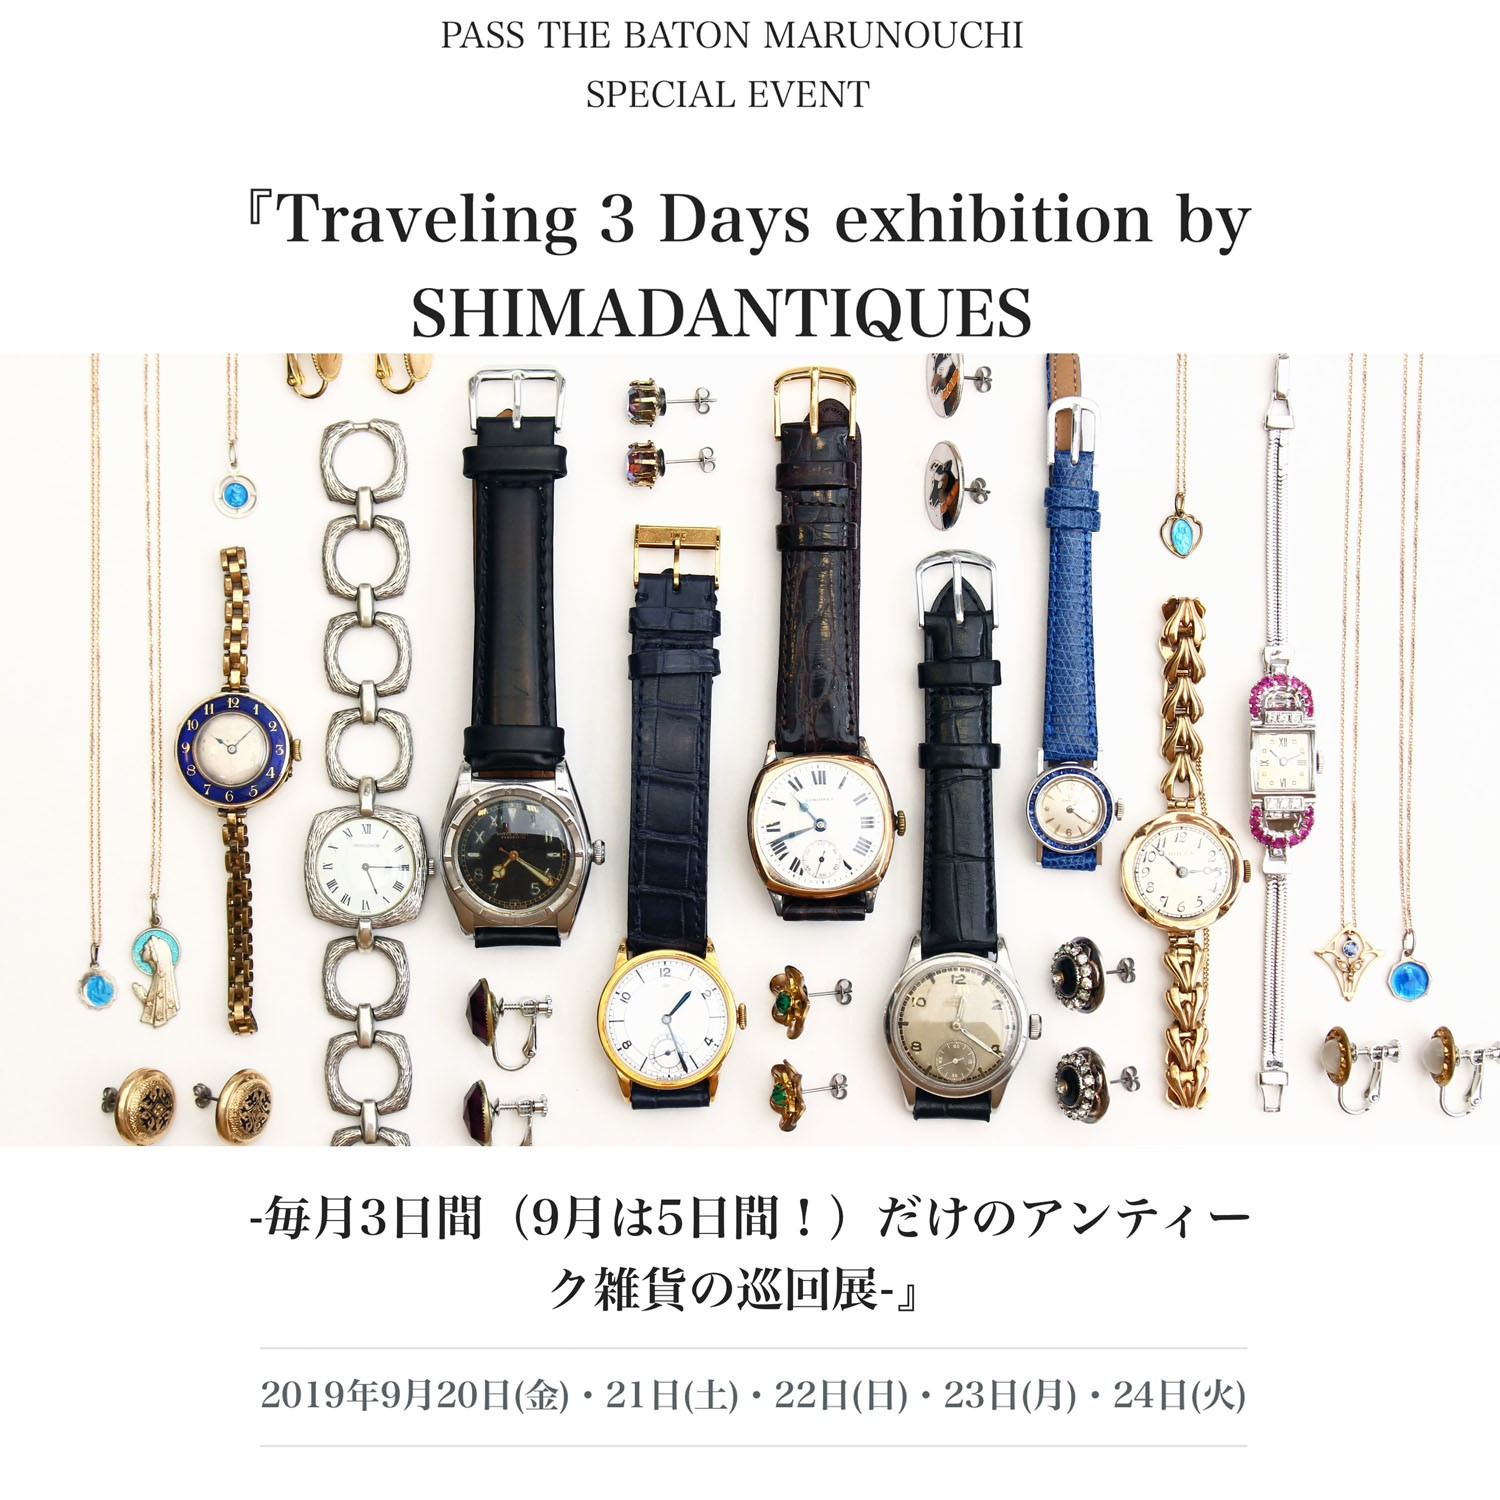 『Traveling 3 Days exhibition by SHIMADANTIQUES』